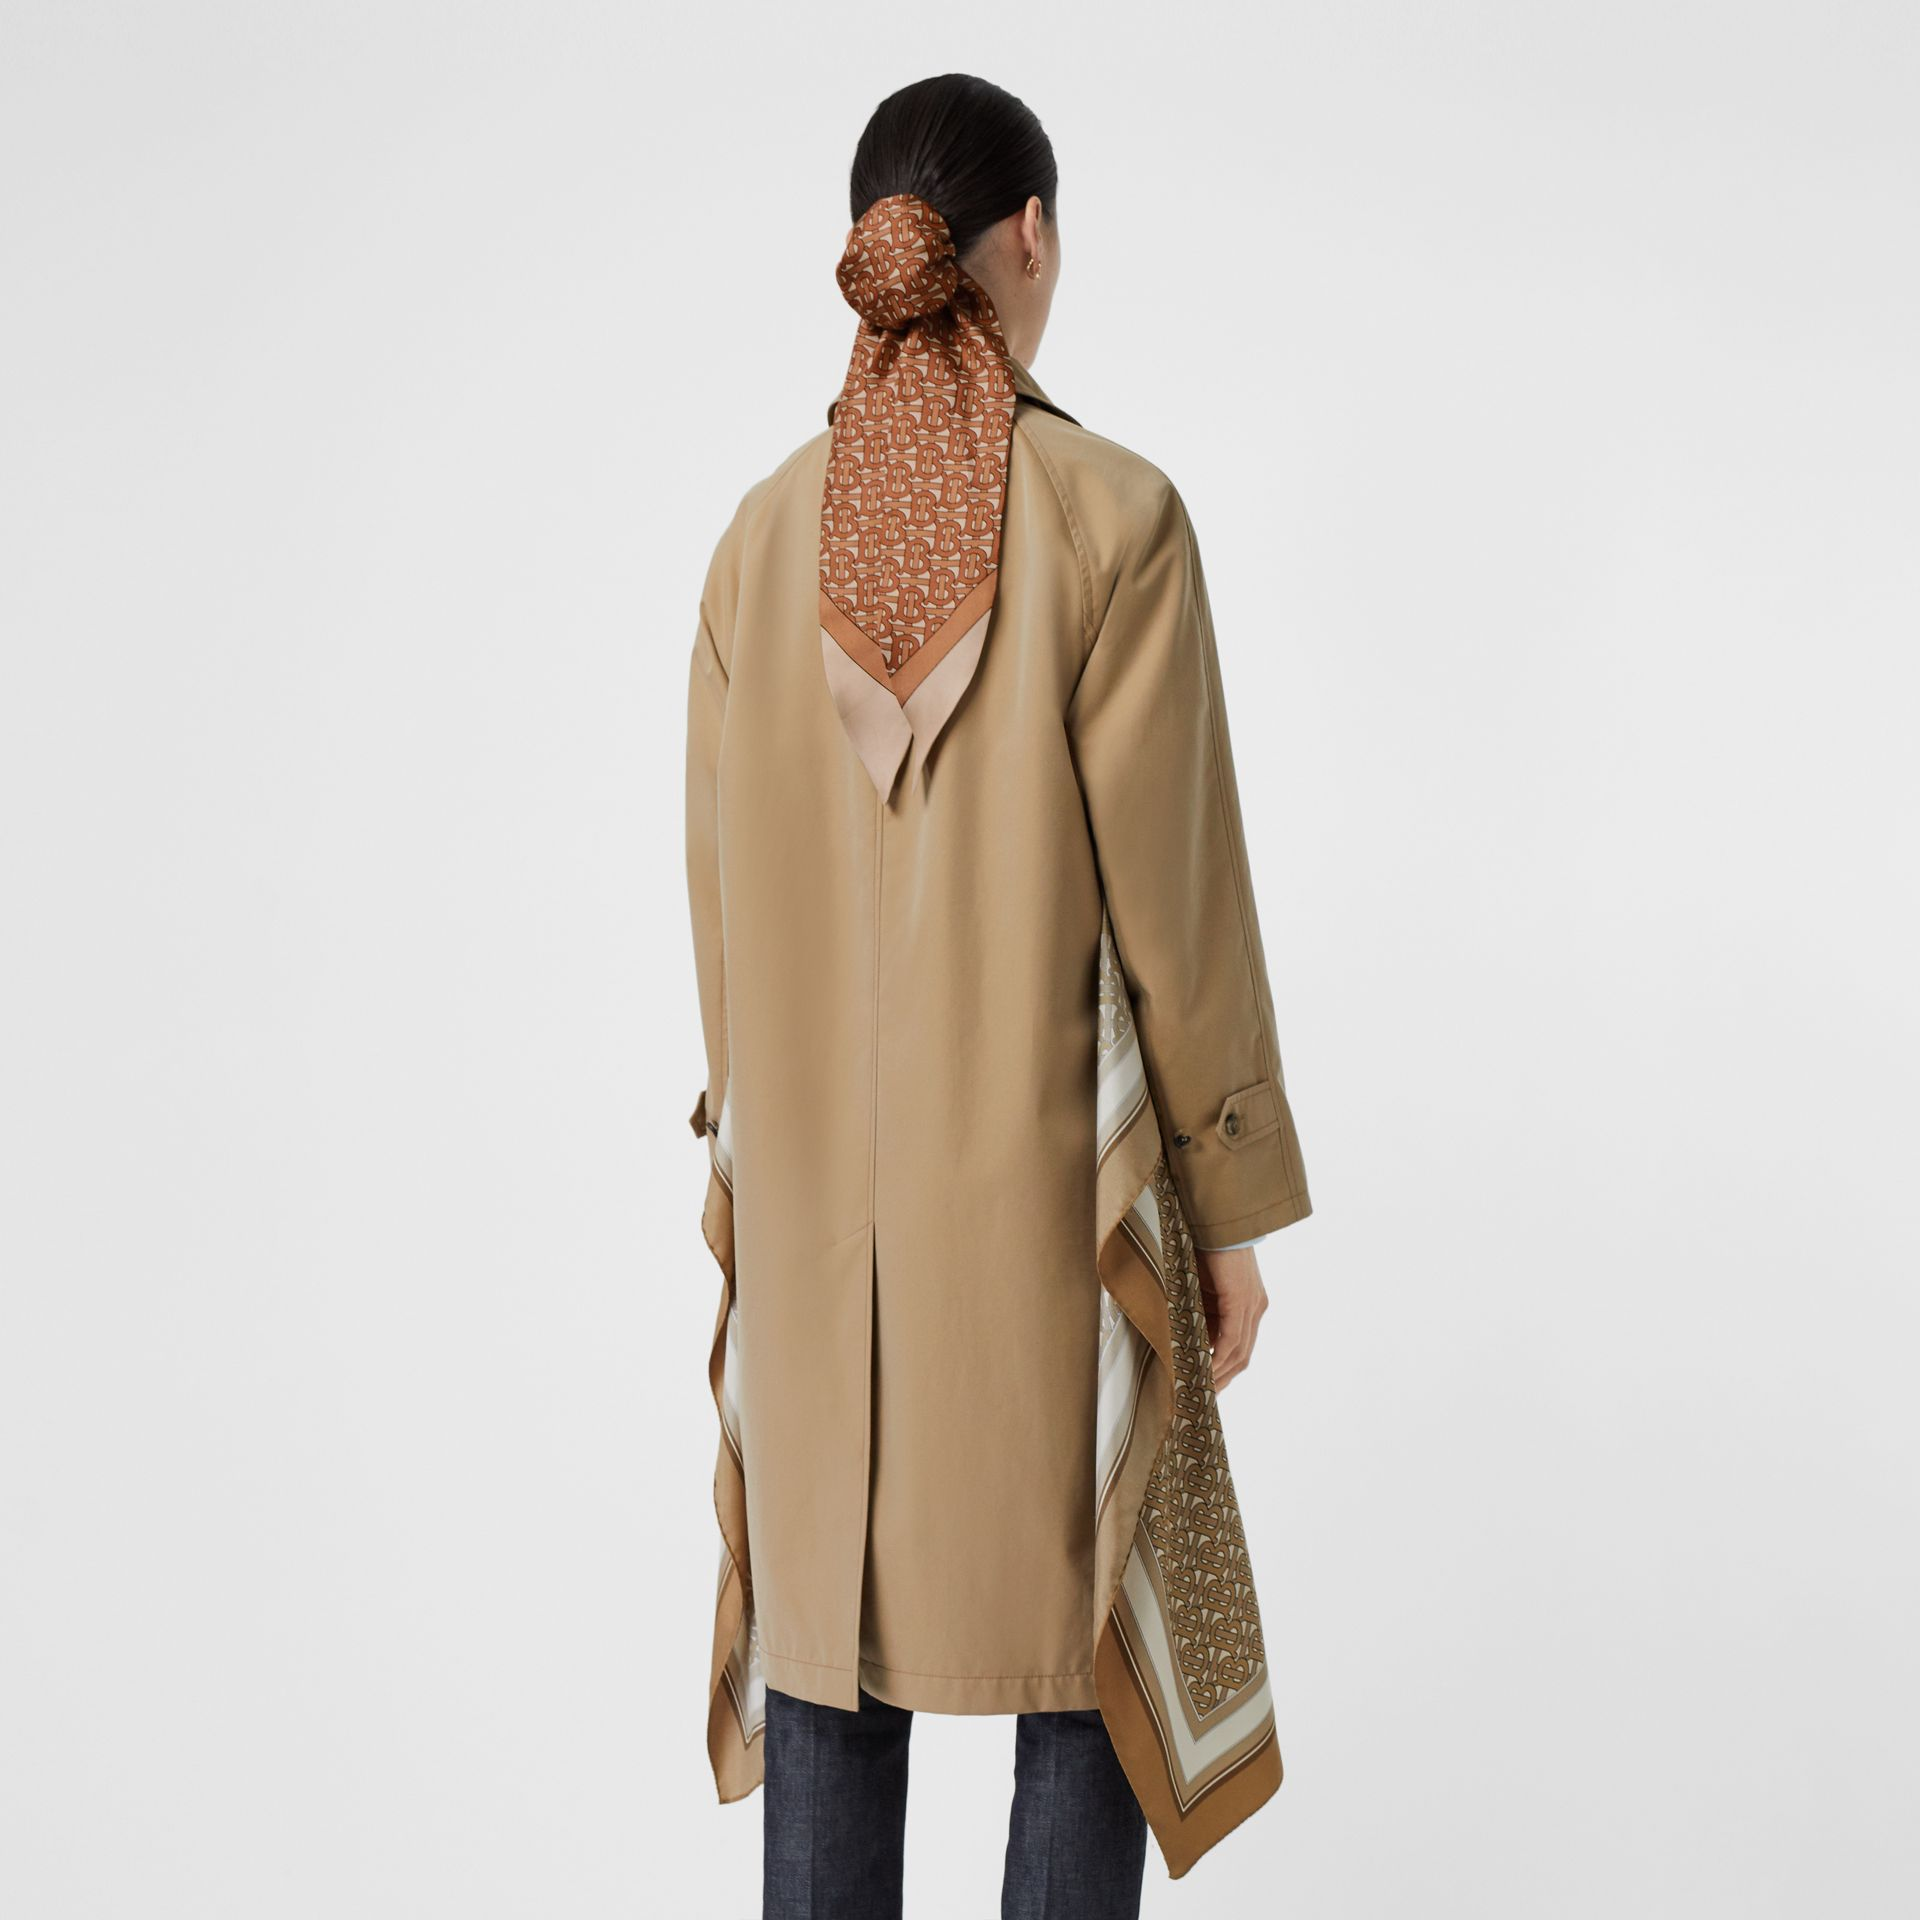 Monogram Print Silk Panel Cotton Car Coat in Pale Honey - Women | Burberry United States - gallery image 2